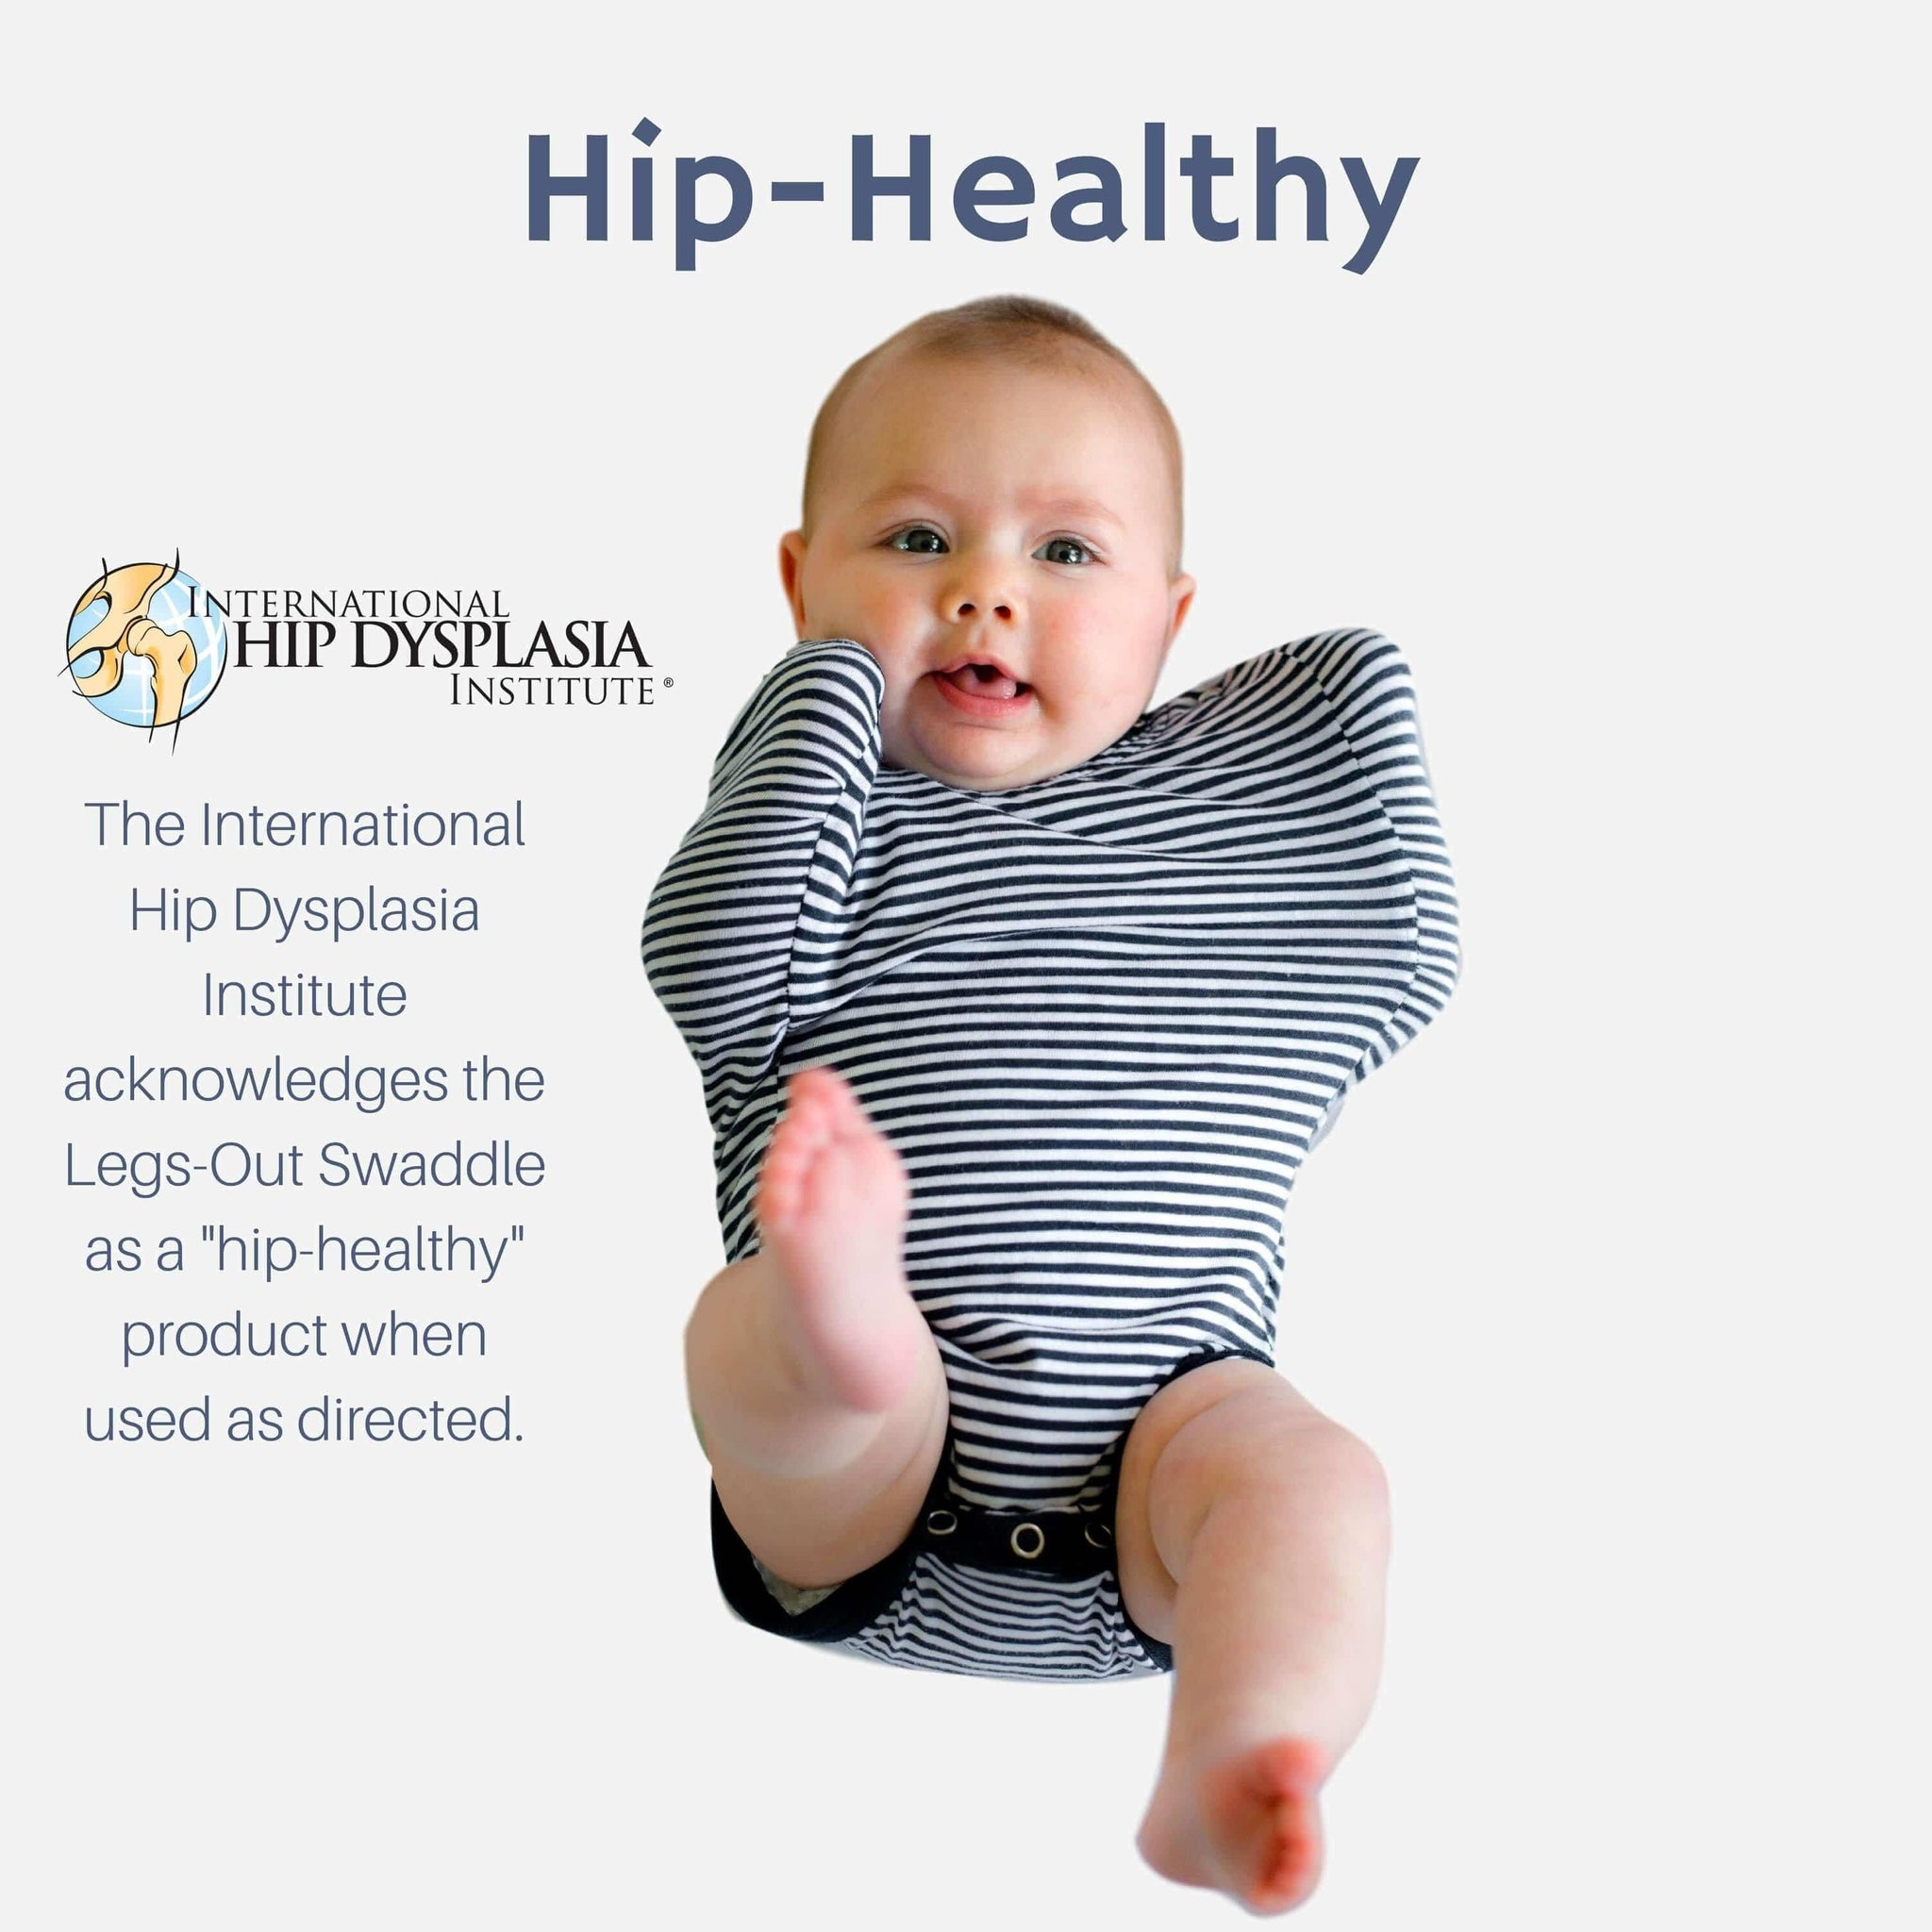 hip healthy swaddle